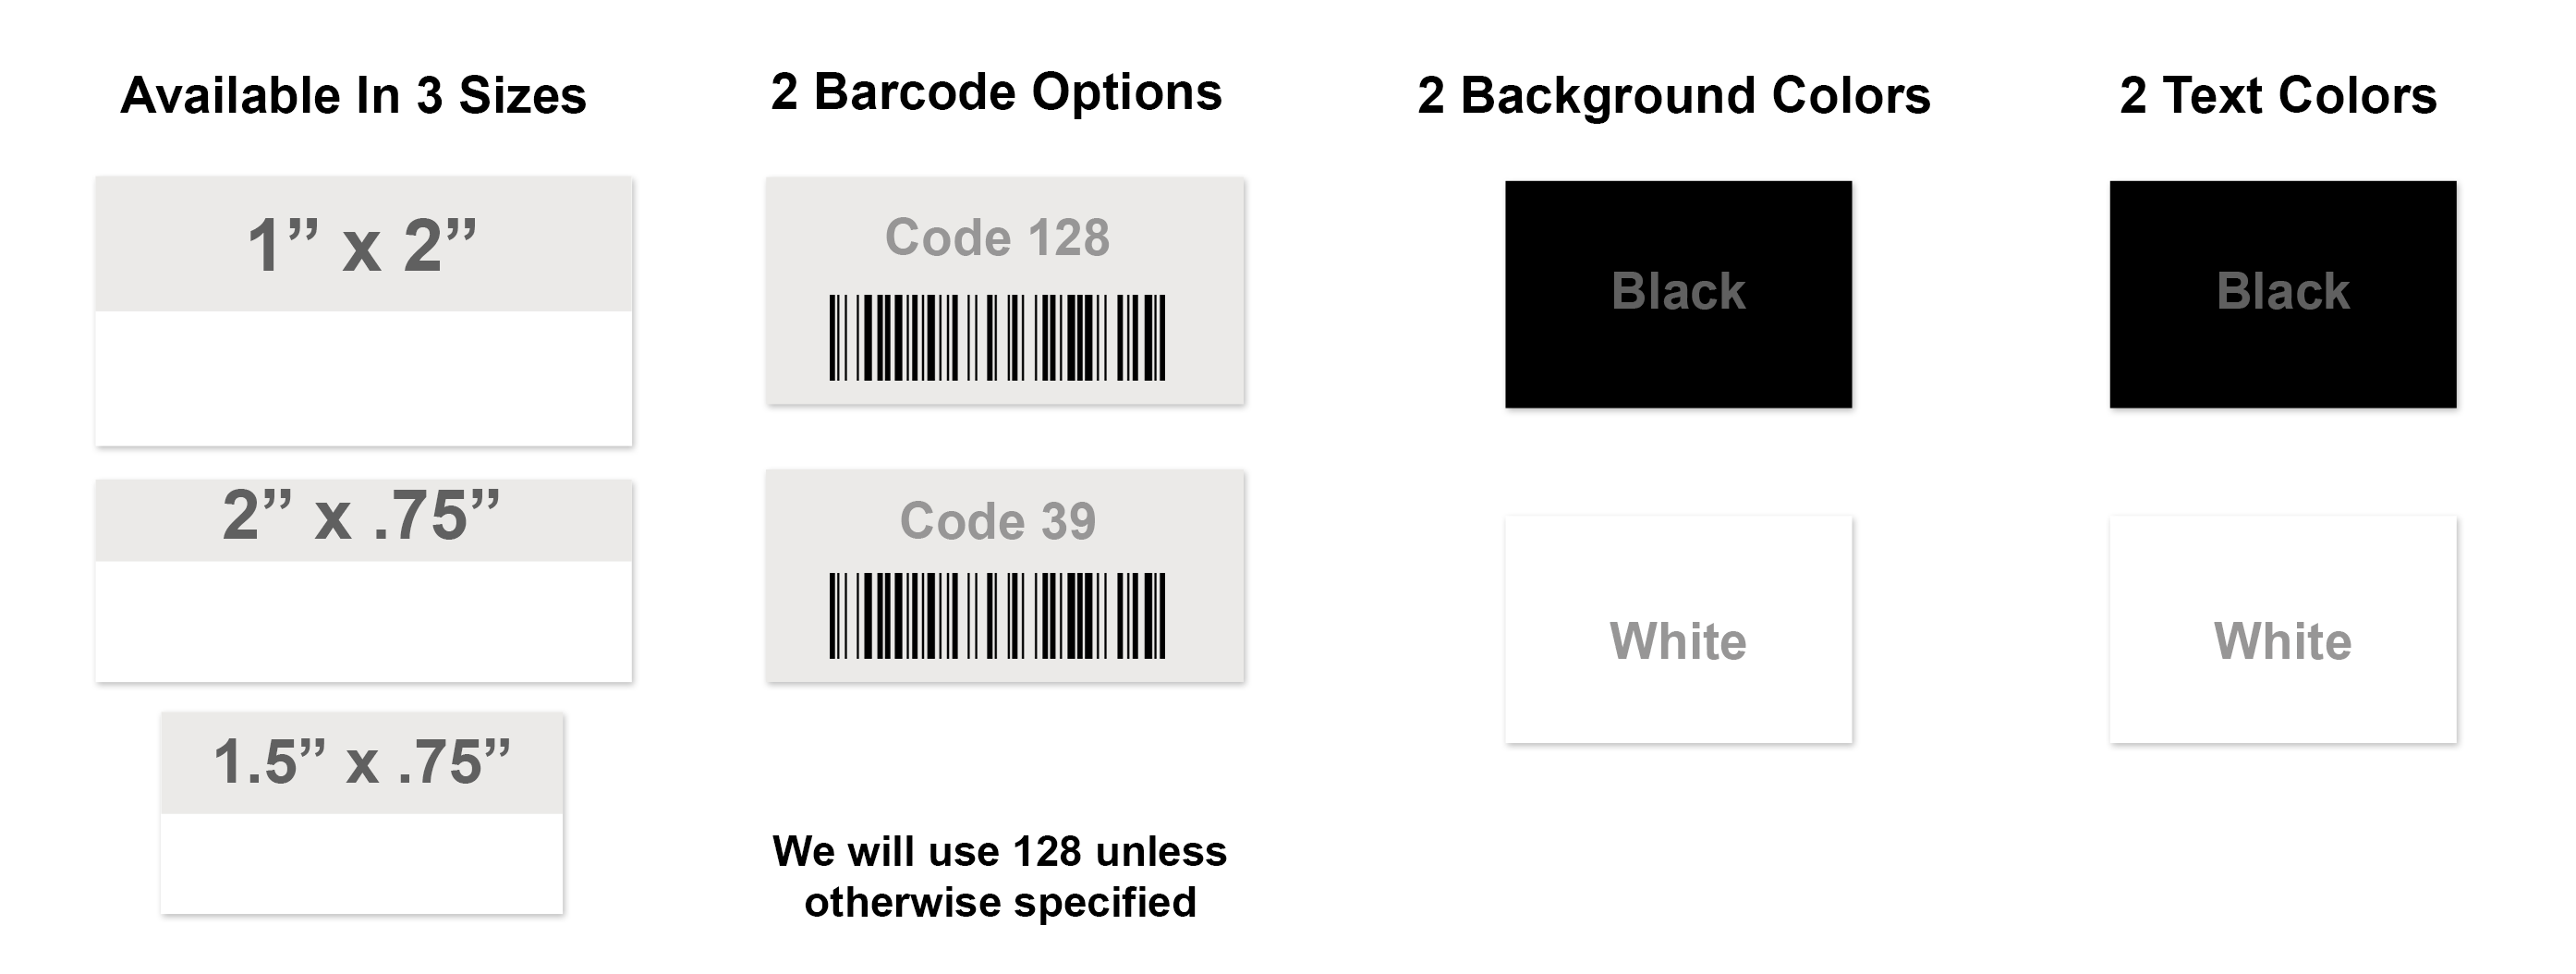 Economy Asset Tag with Barcode Options